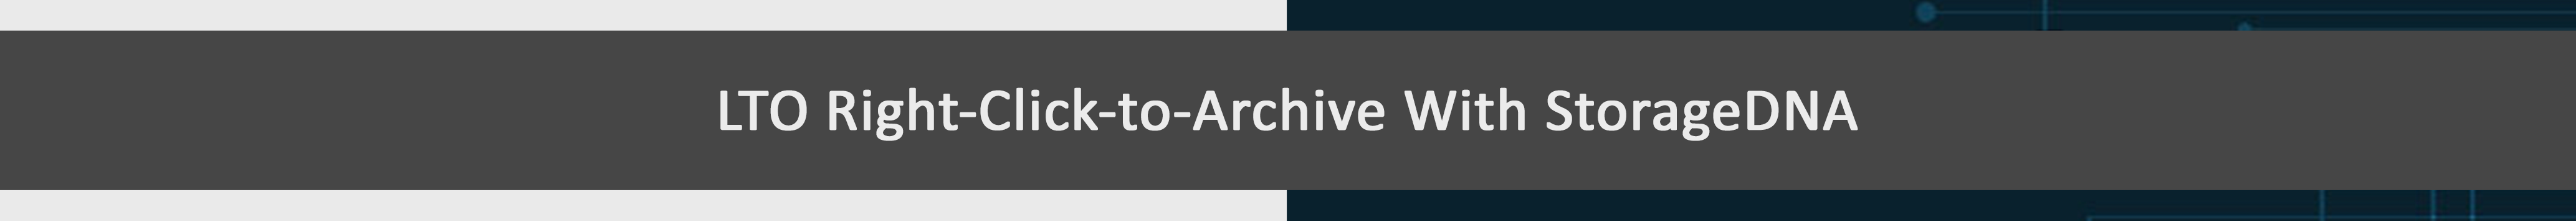 Studio Network Solutions_LTO Right-Click-to-Archive With StorageDNA